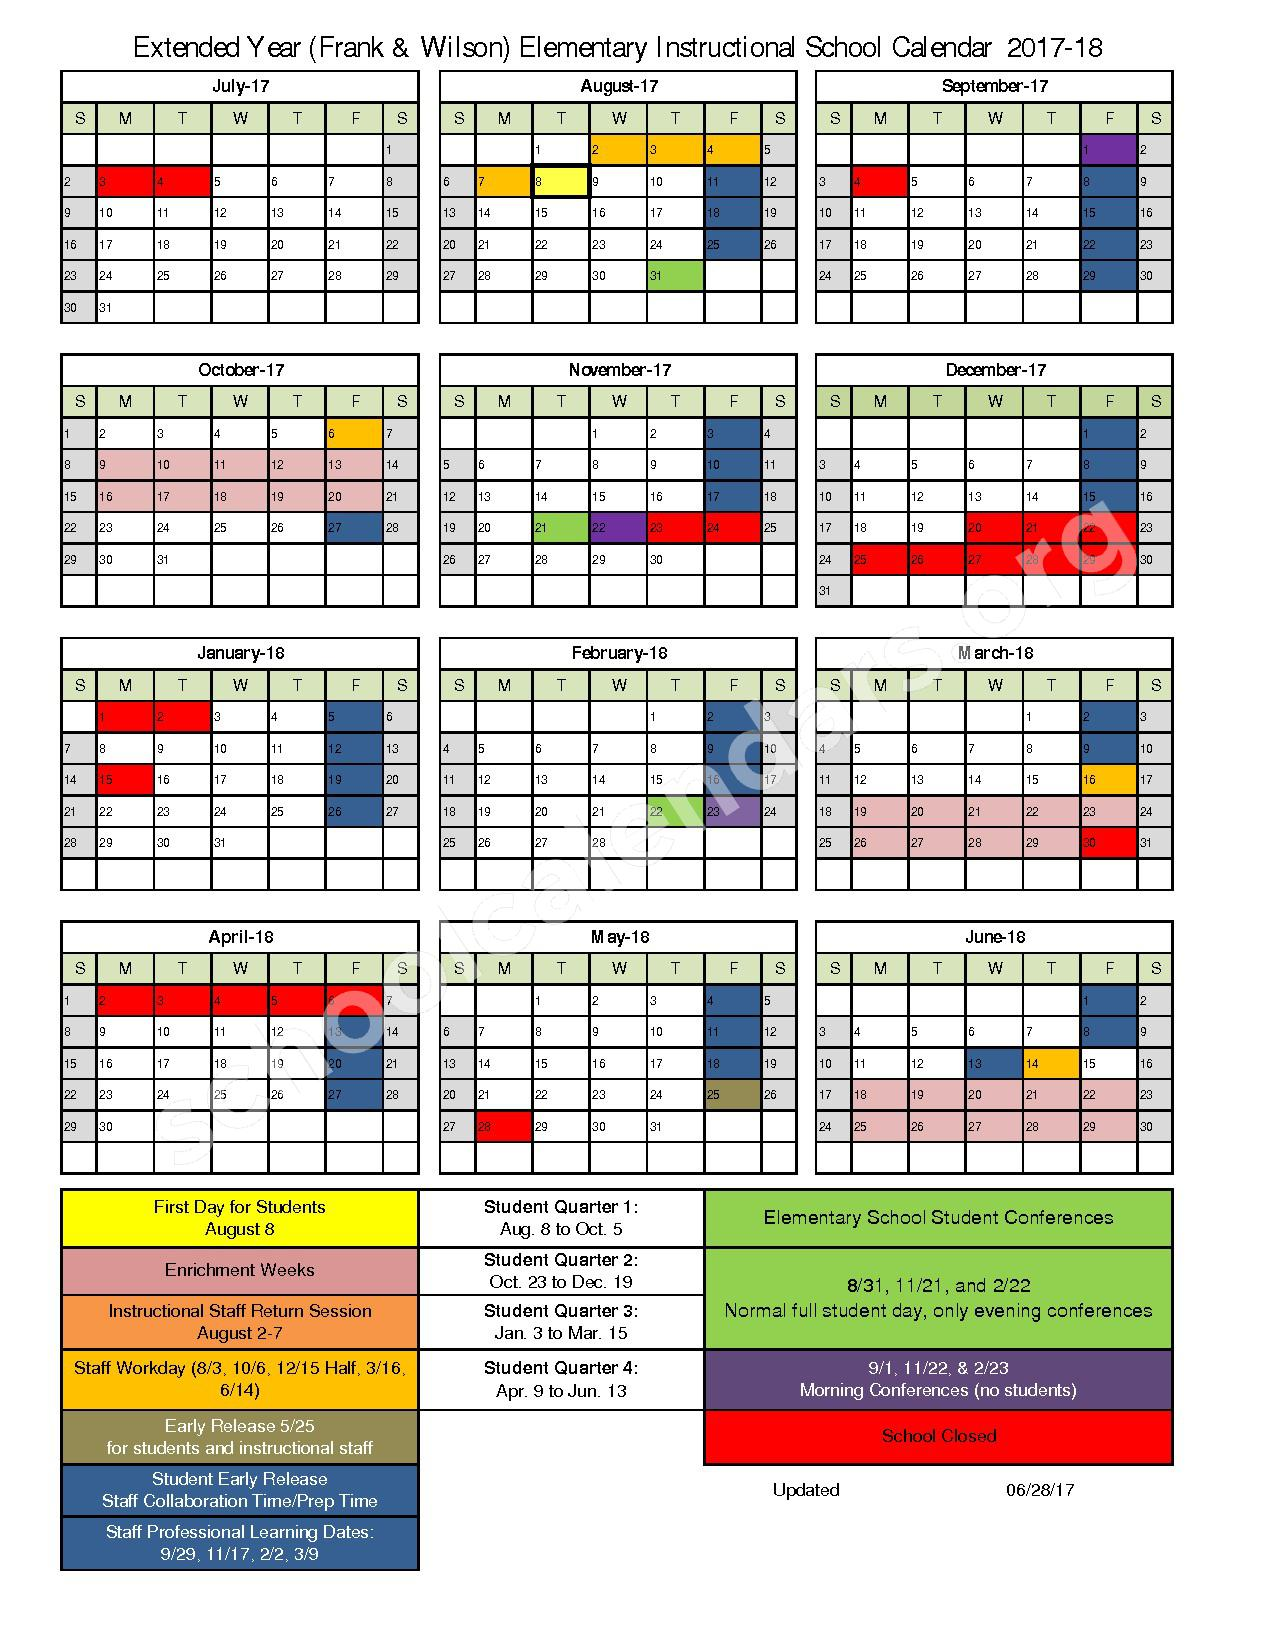 2017 - 2018 Extended Year Elementary Instructional Calendar – Frank Elementary School – page 1